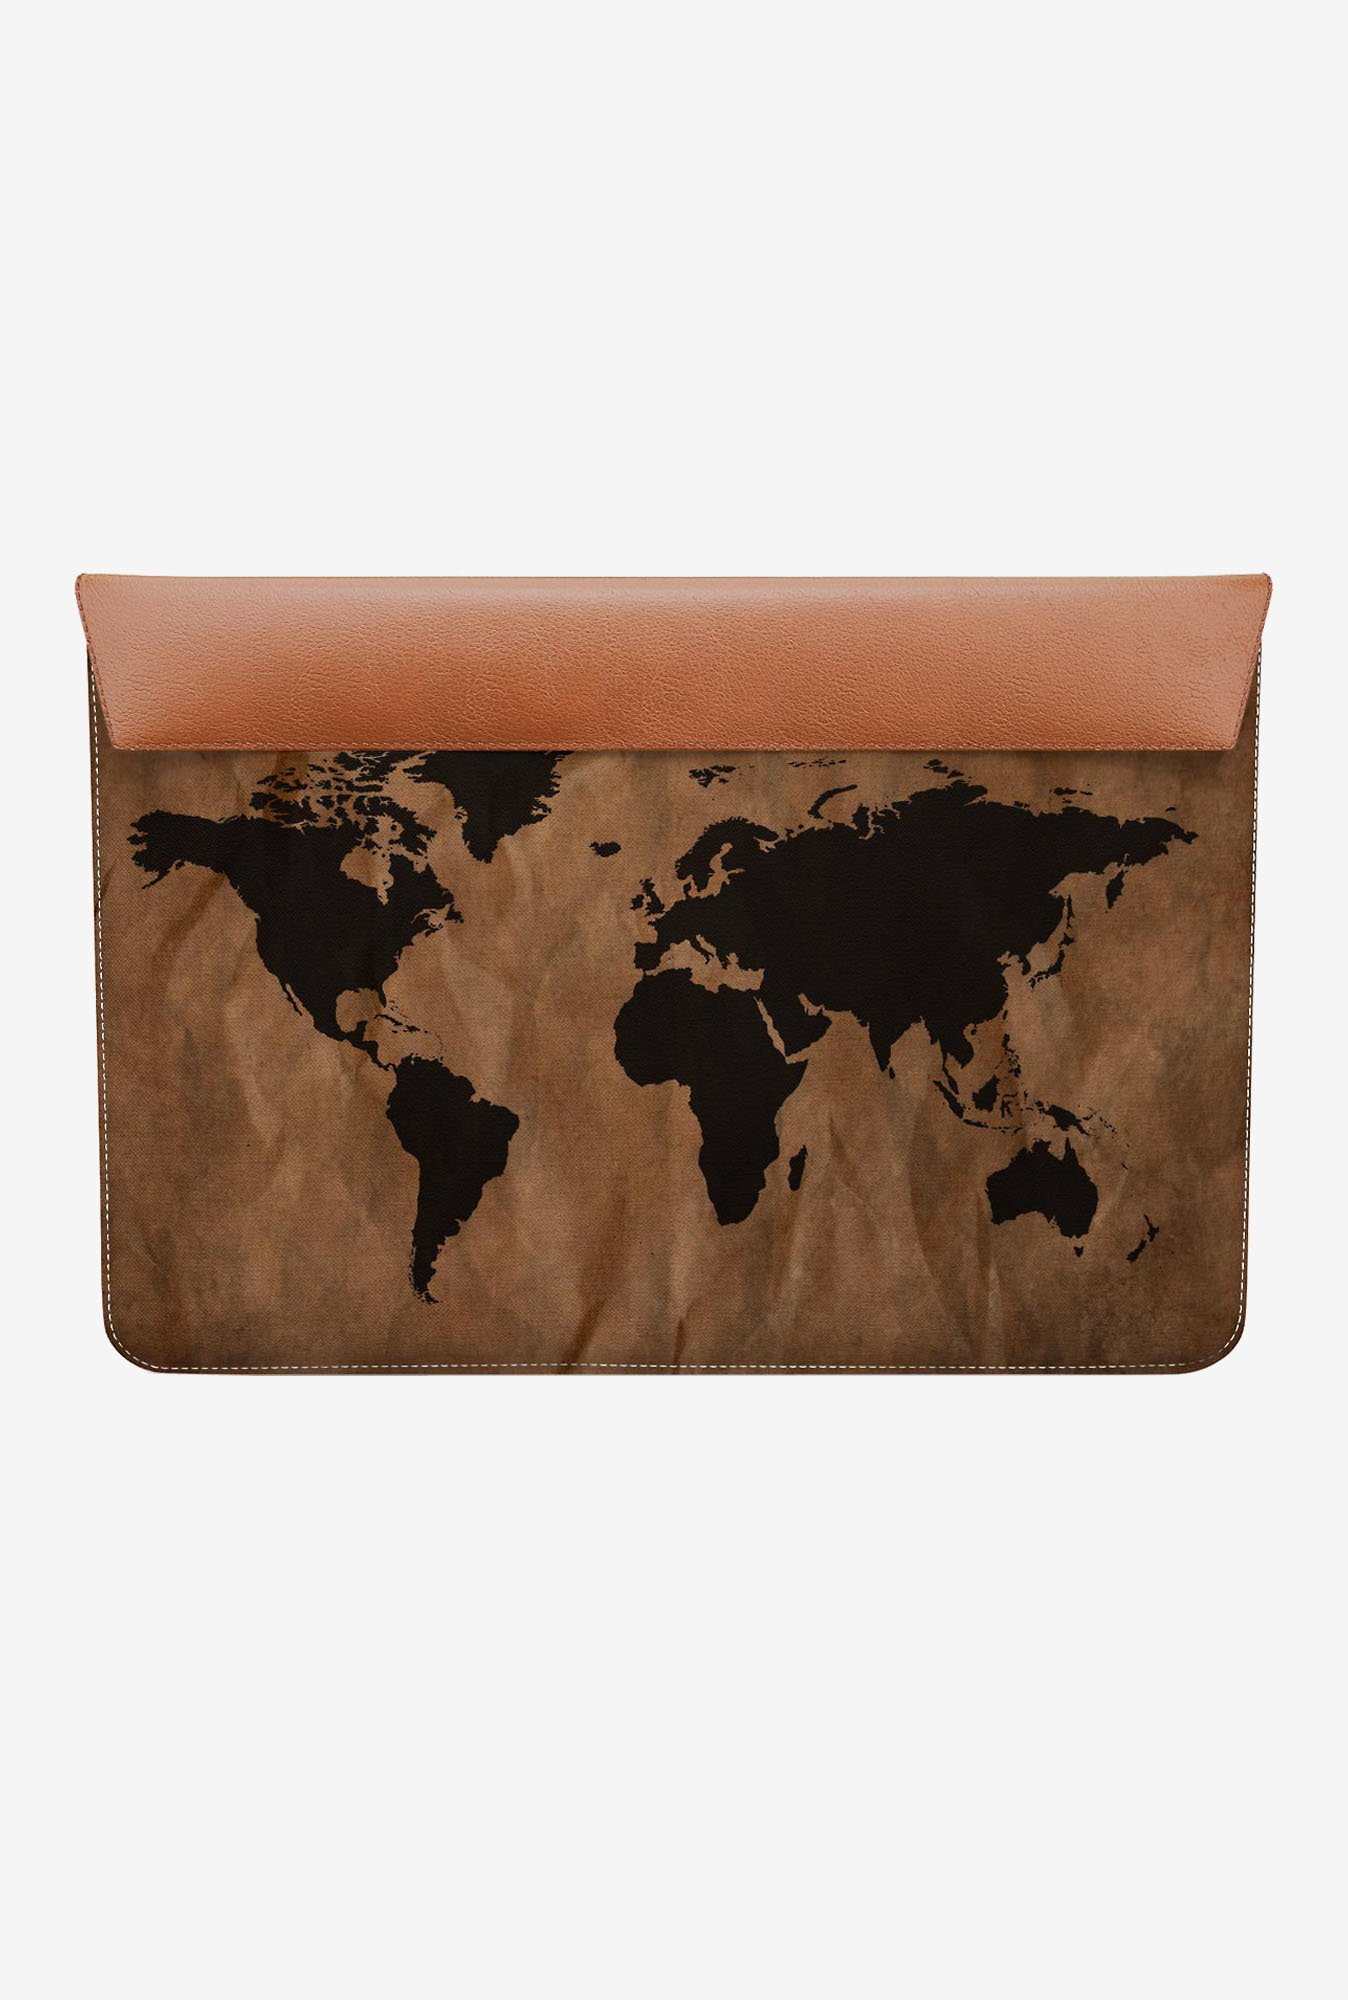 DailyObjects World Map MacBook Air 11 Envelope Sleeve